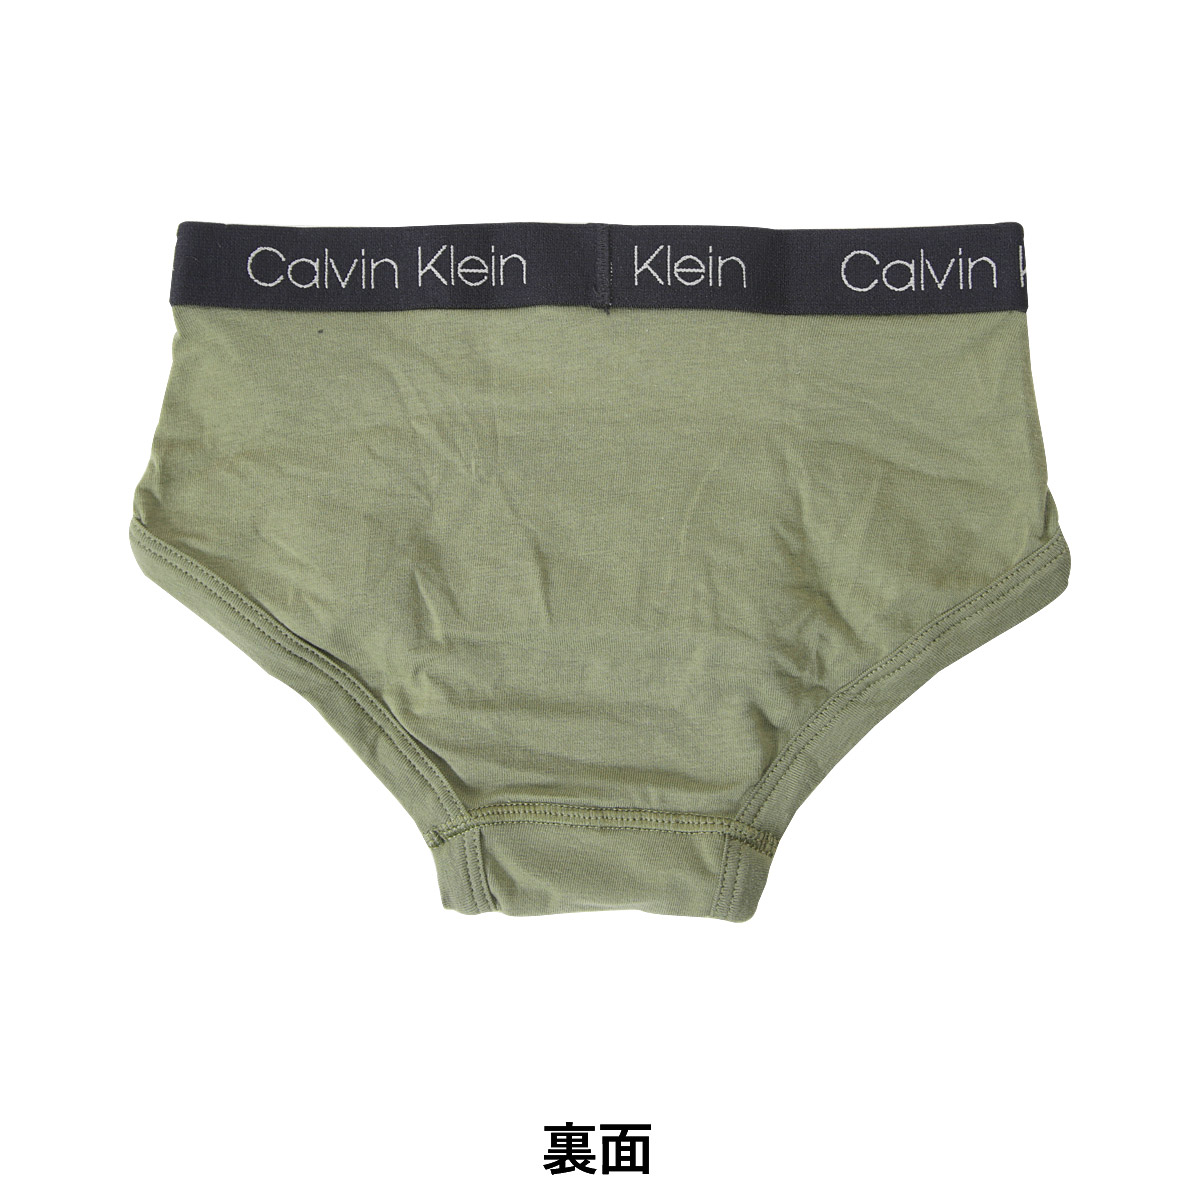 b2667eb57d Crazy ferret celebration of calvin klein briefs kids underwear calvin klein  underwear boys jpg 1200x1200 Calvin